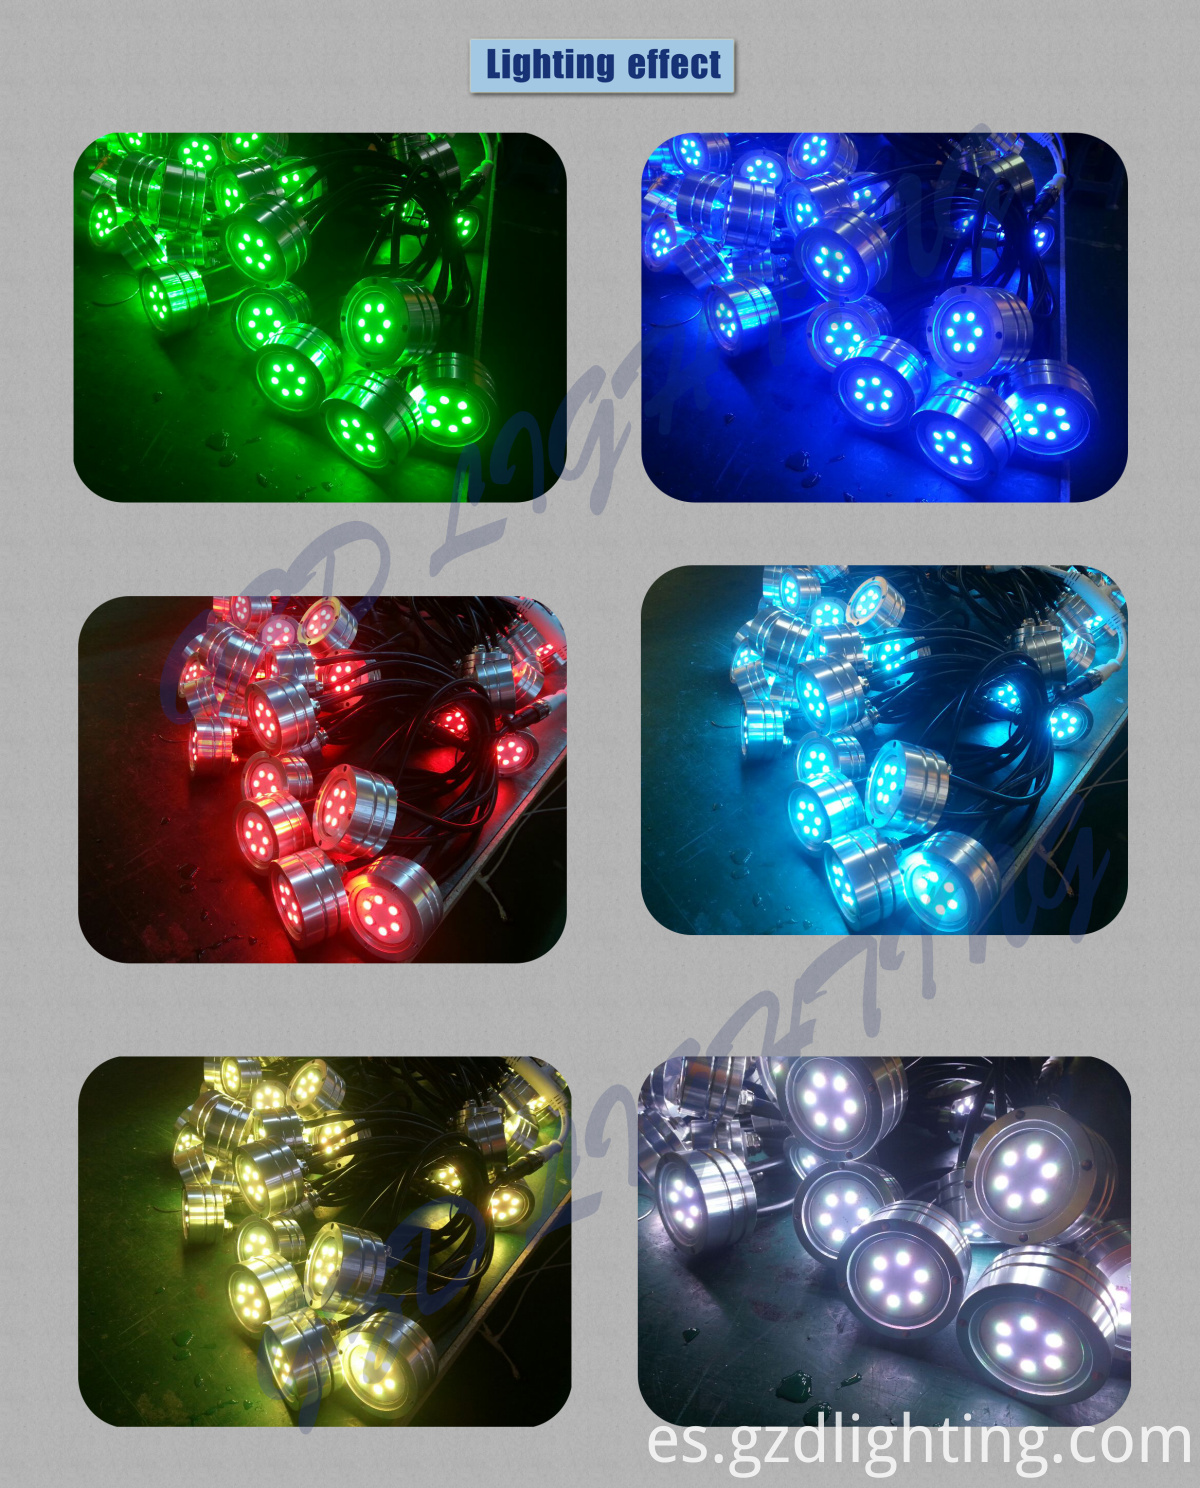 LED SWIMMING POOL LIGHT LIGHTING EFFECT